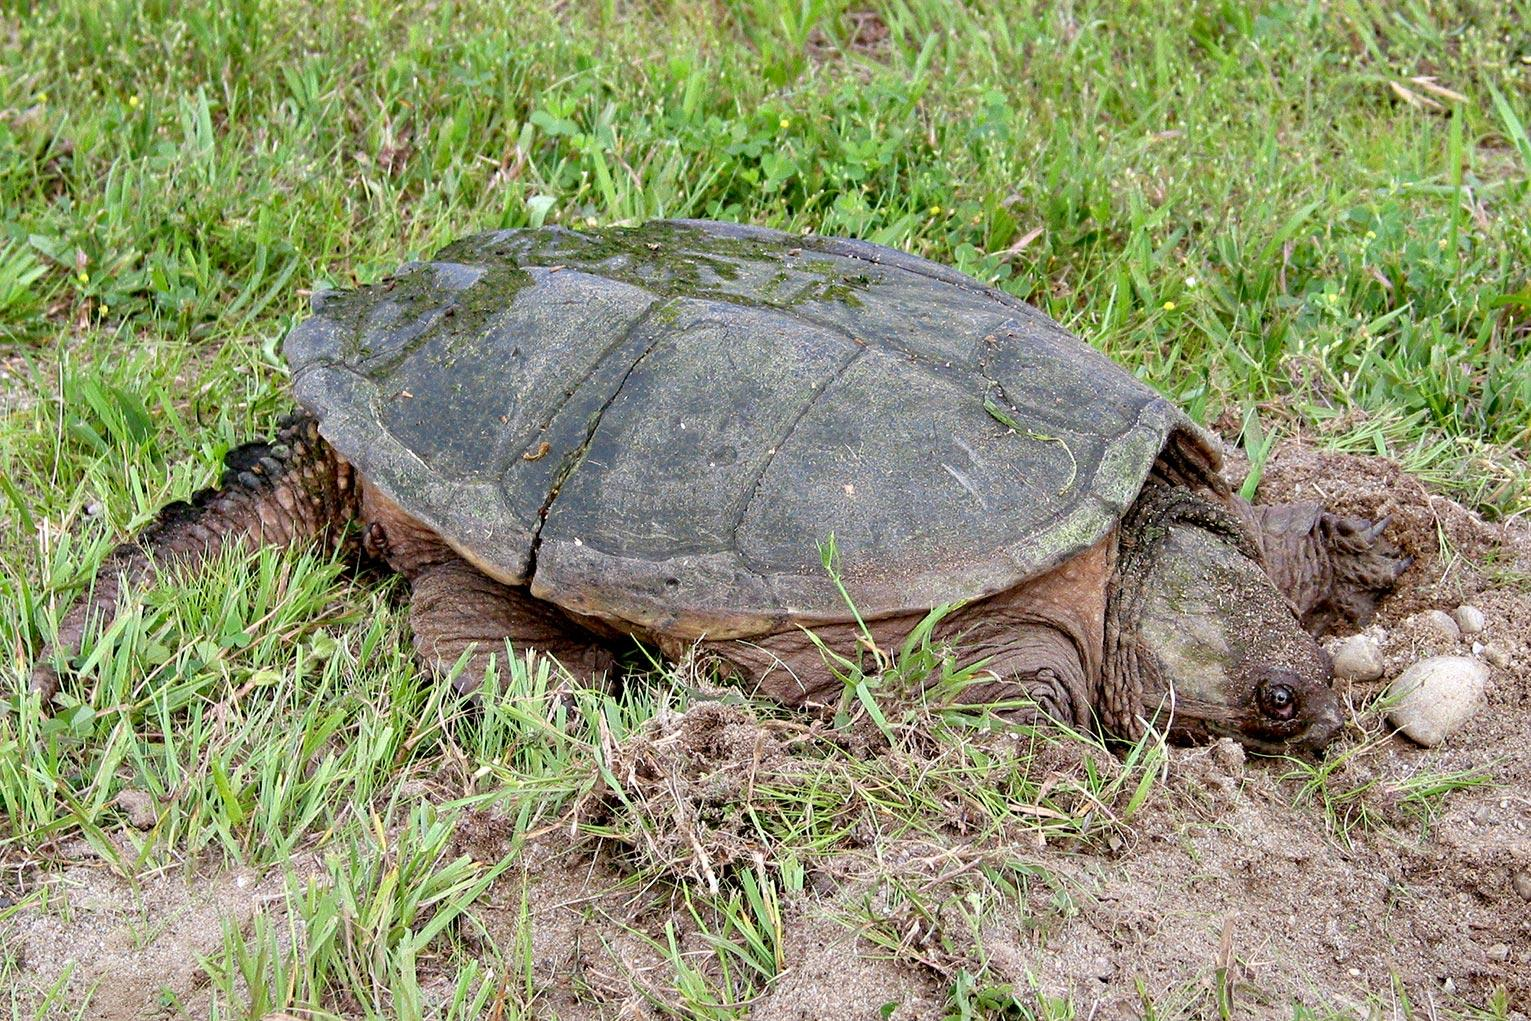 Science teacher 'feeds puppy to turtle' in front of students